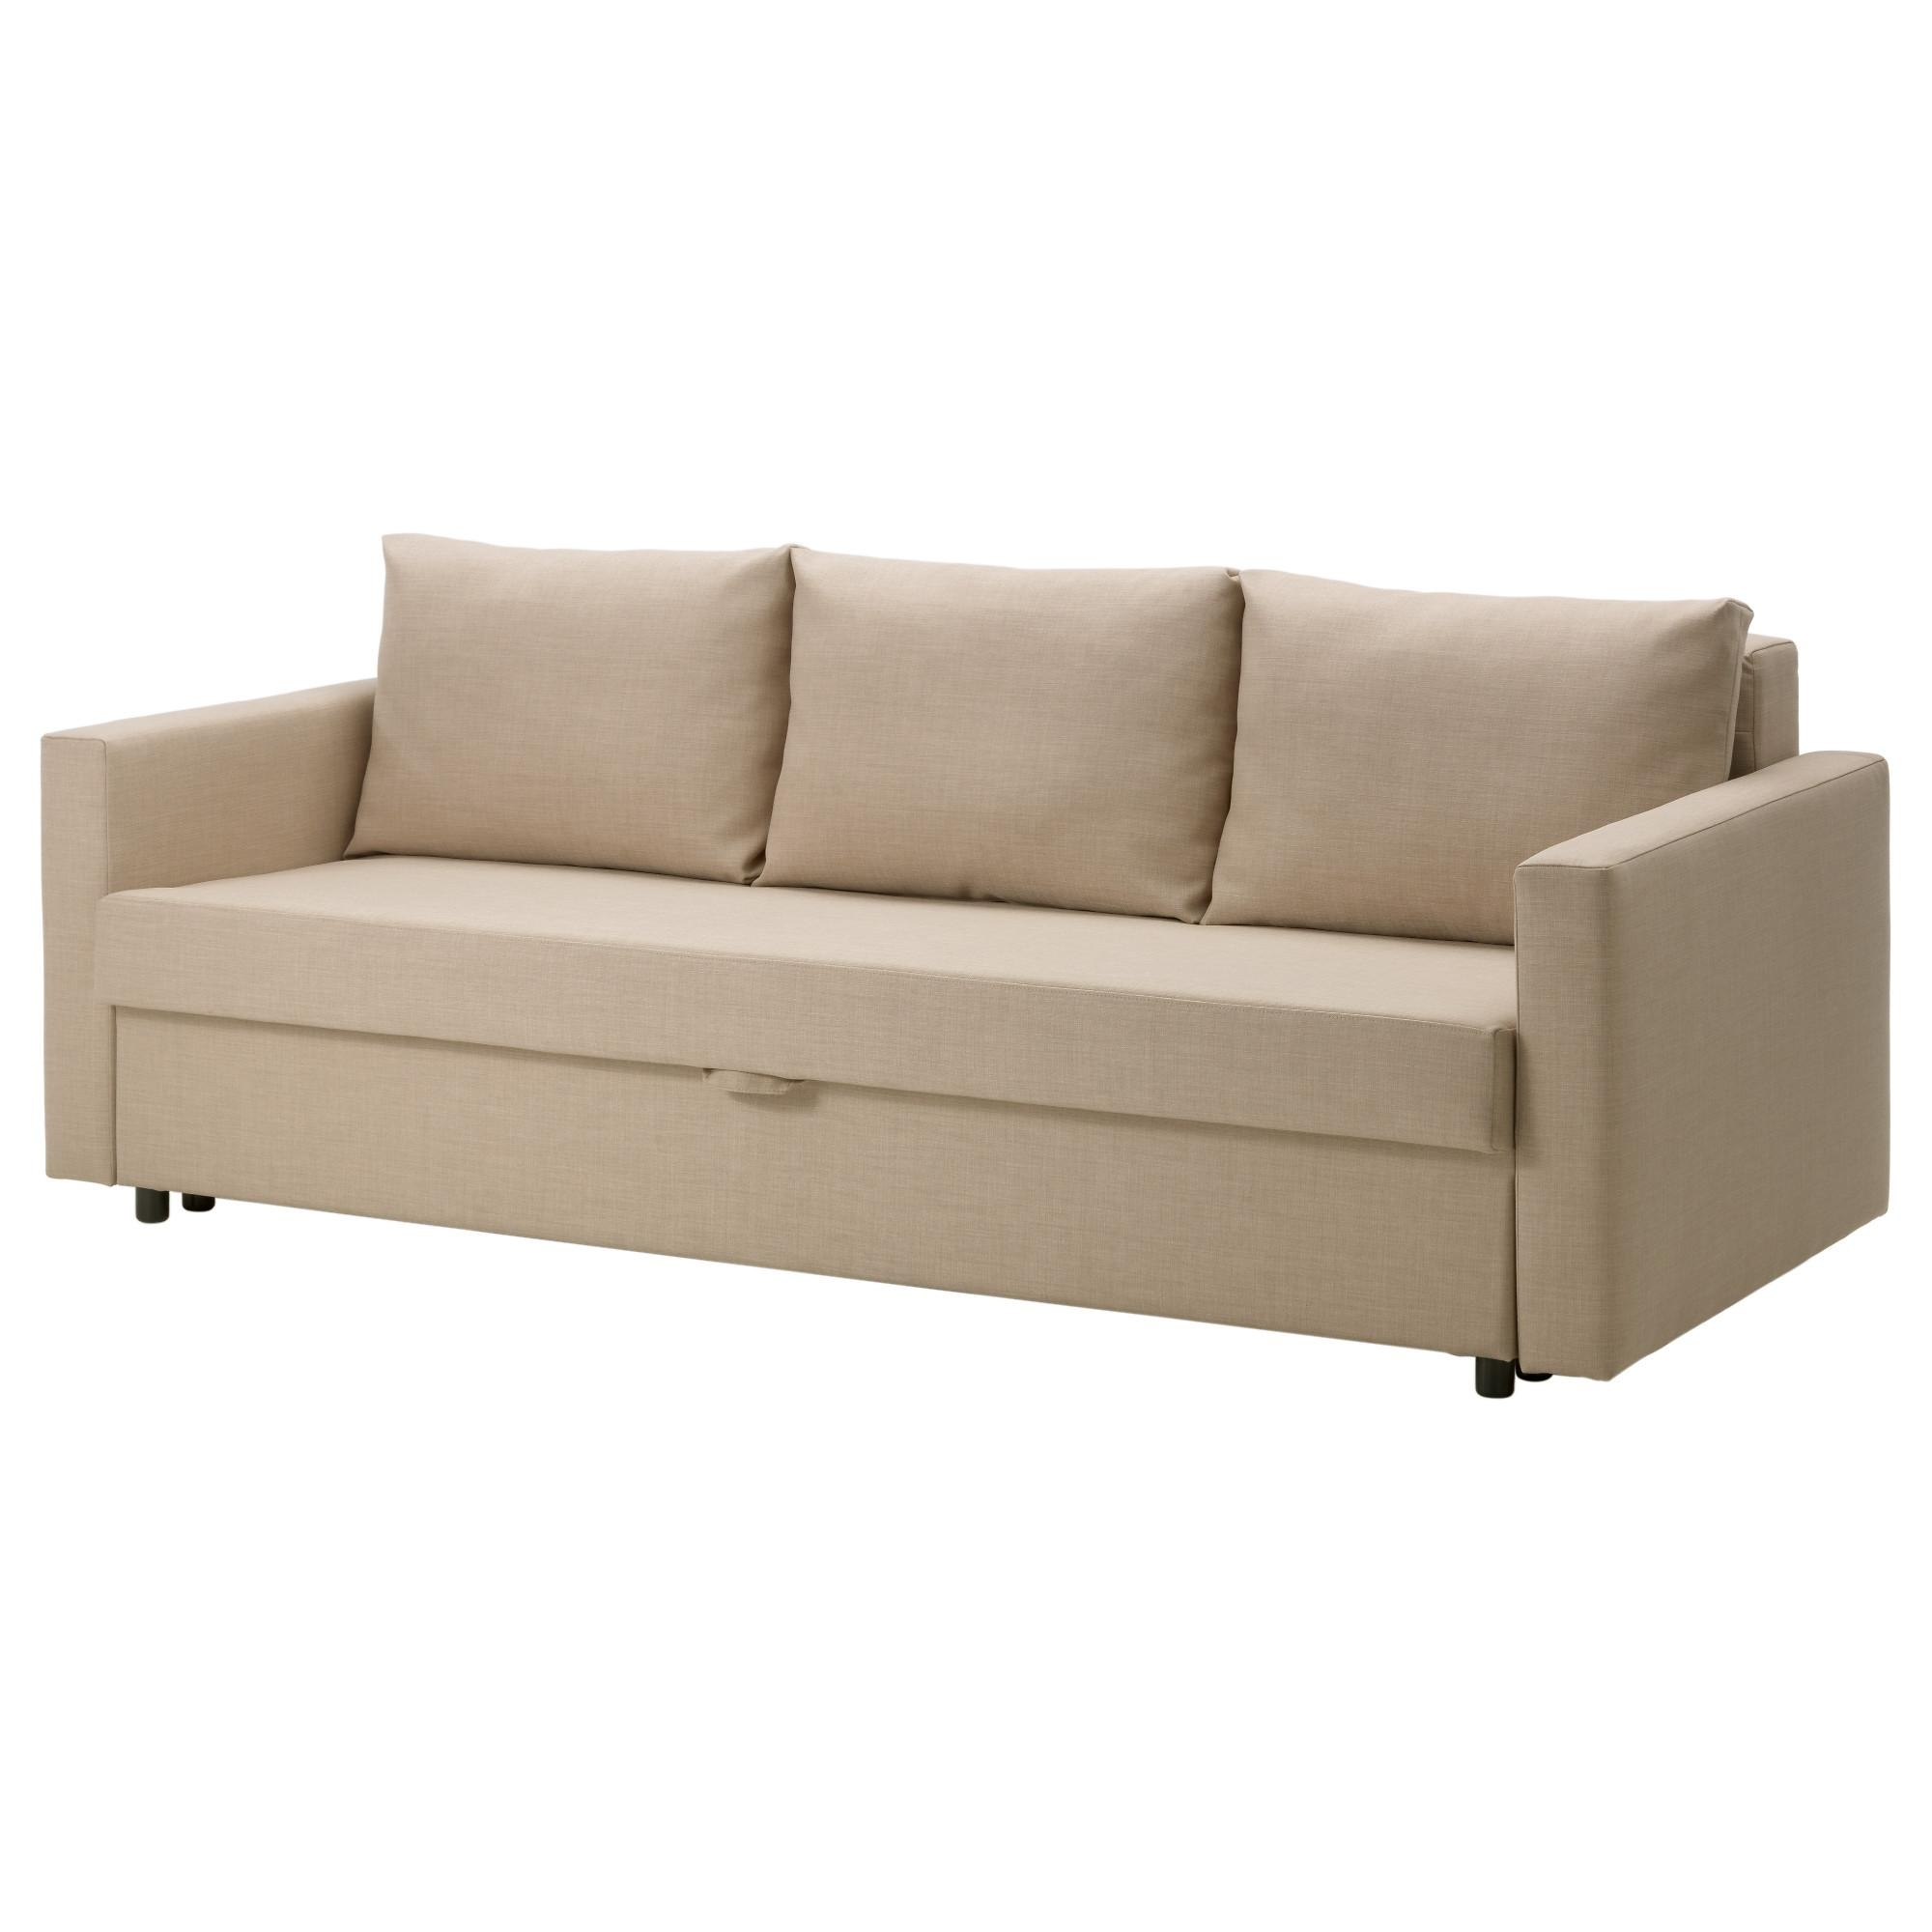 Furniture: Ikea Sofa Sleeper For Modern Minimalist Room Decor Throughout Convertible Queen Sofas (View 16 of 20)